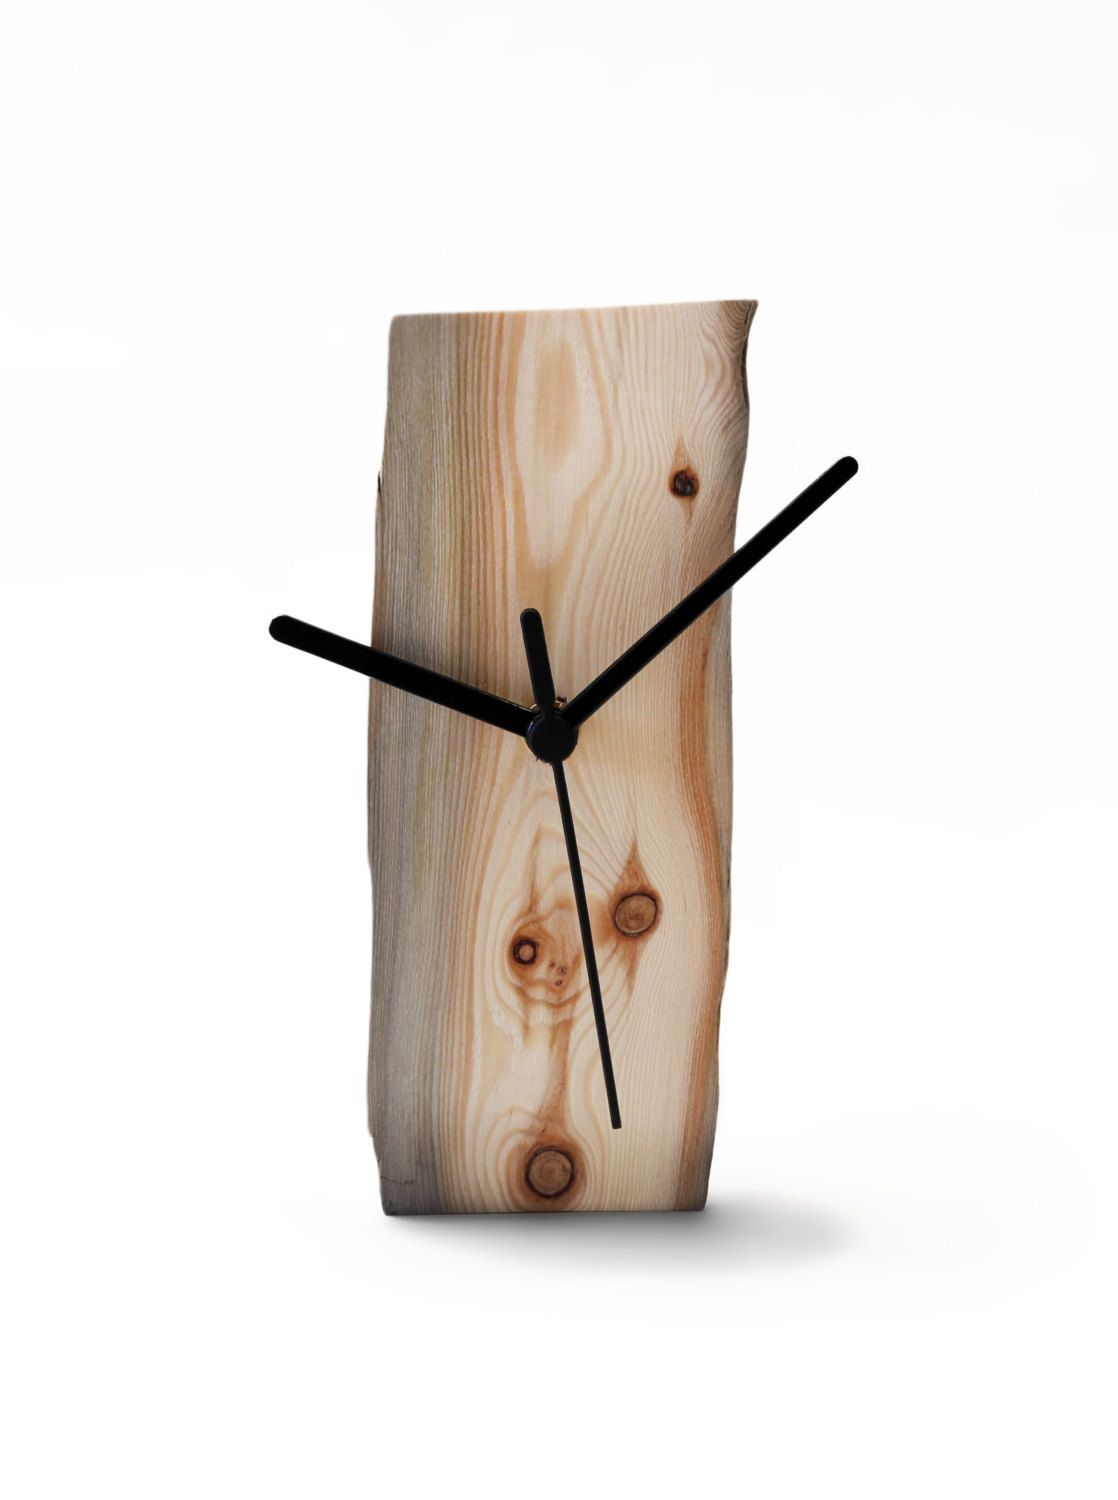 horloge de bois flott horloge en bois horloge murale par railis clocks pinterest. Black Bedroom Furniture Sets. Home Design Ideas